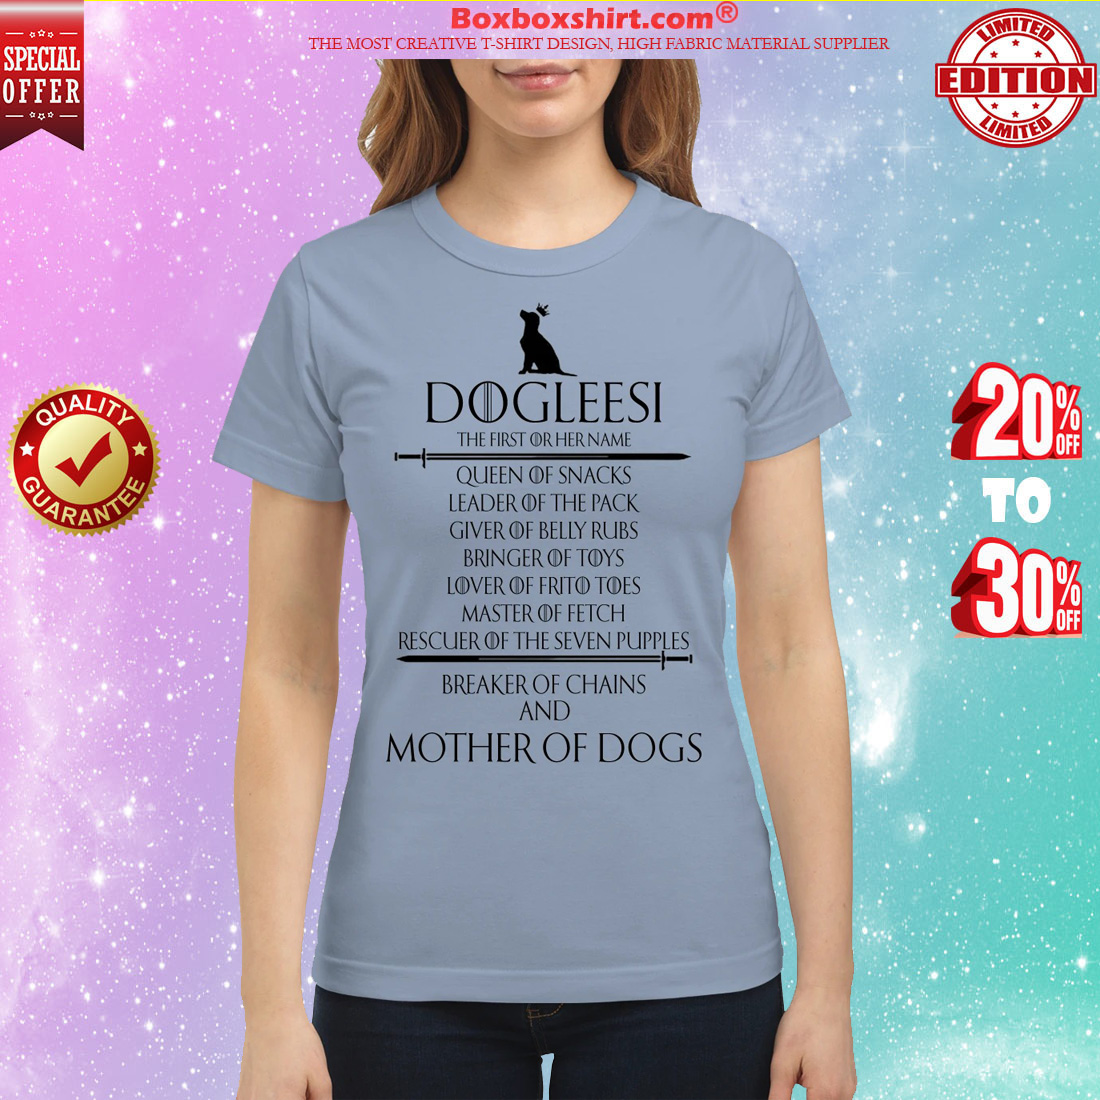 Dogleesi mother of dogs classic shirt